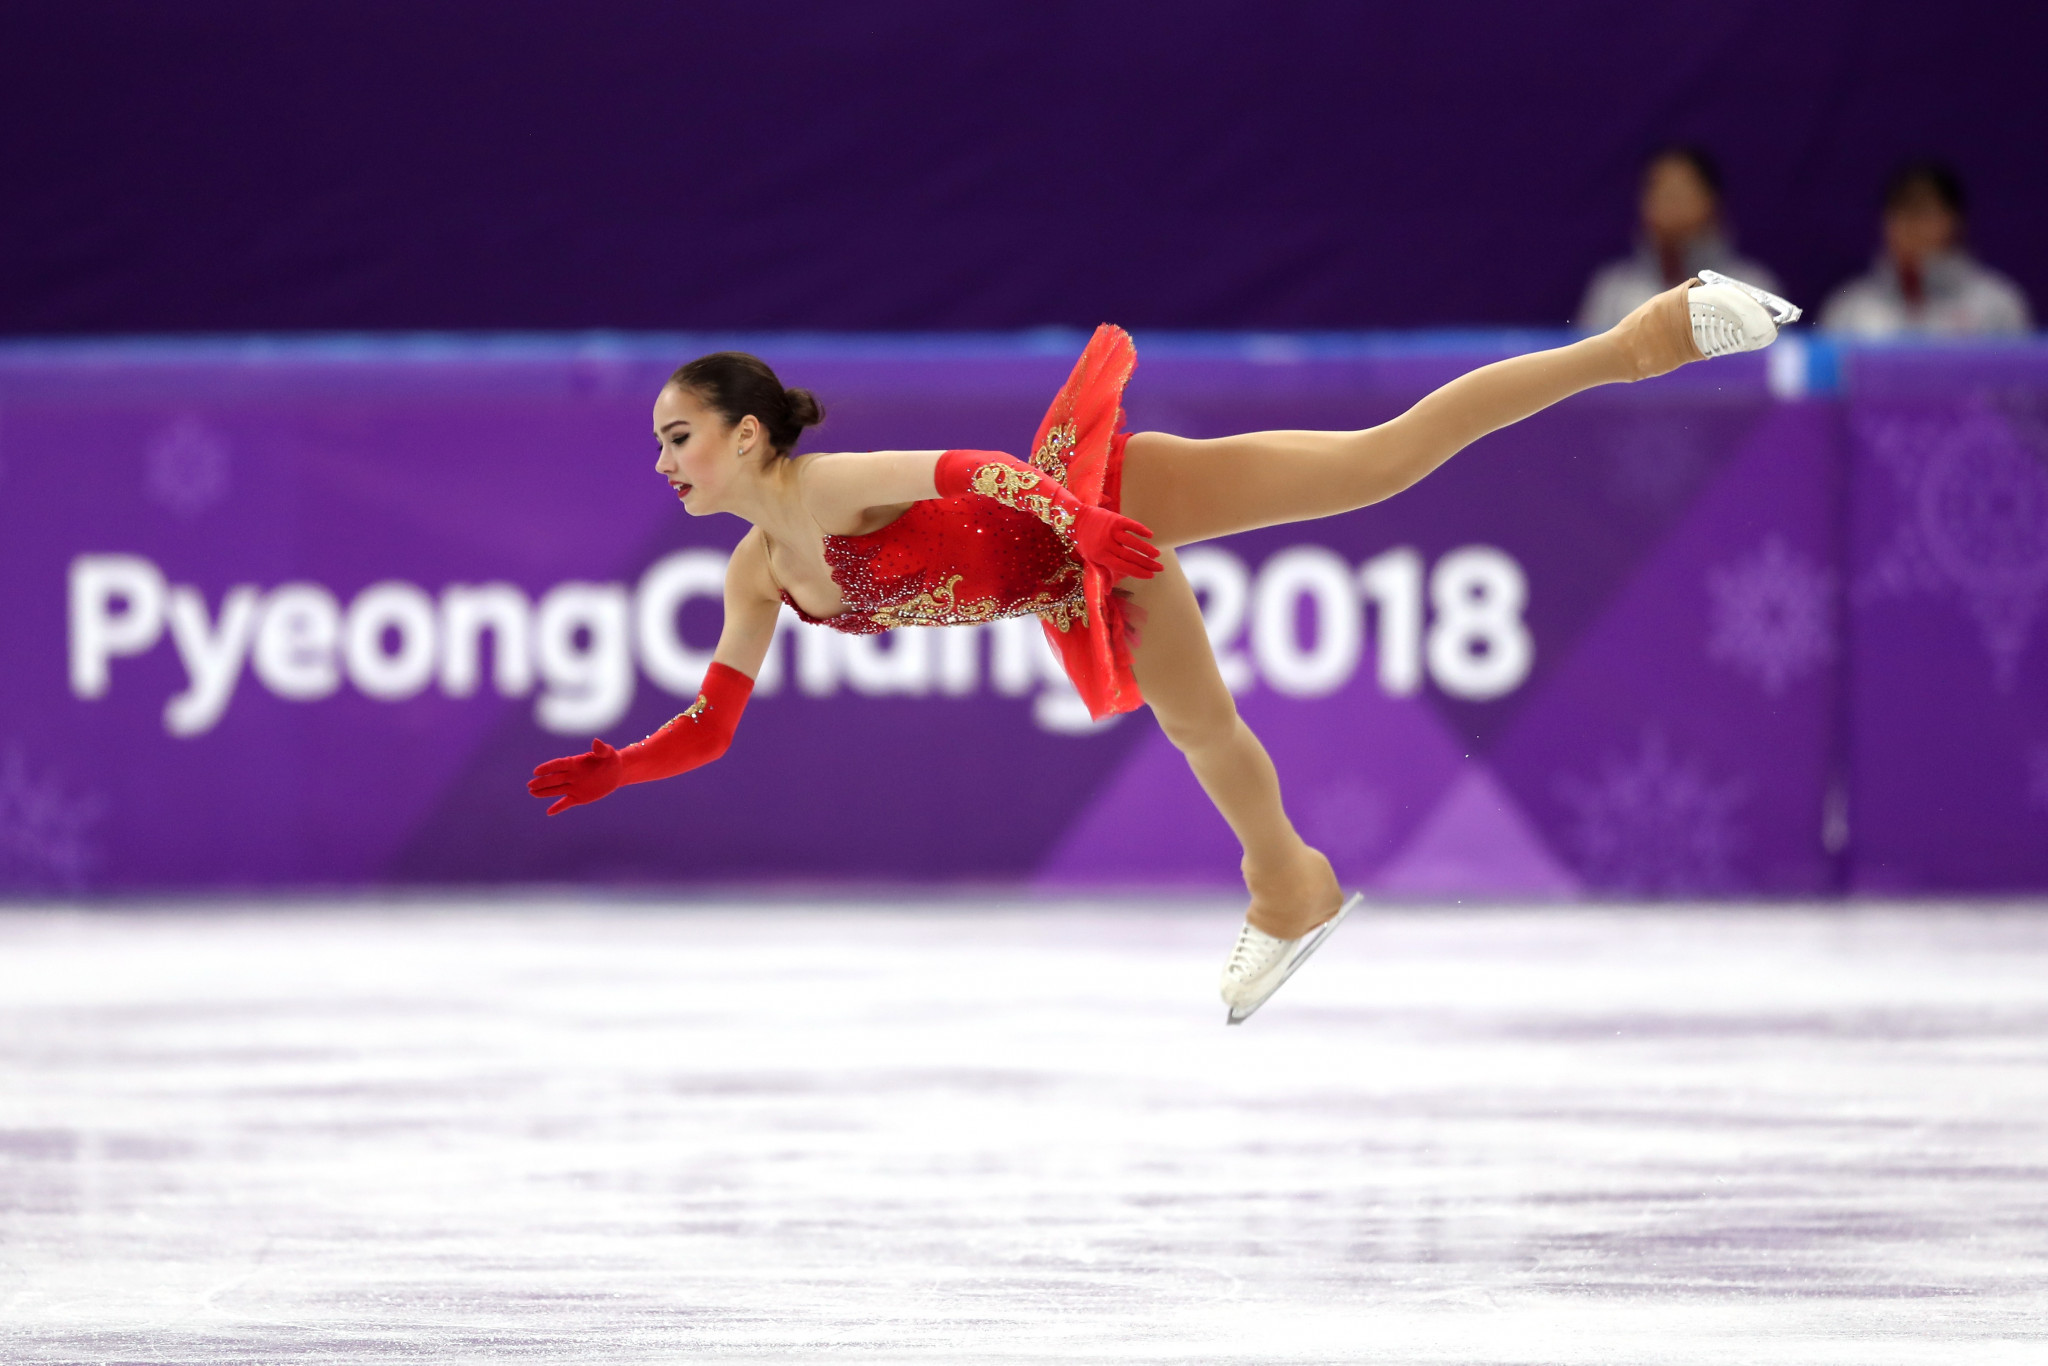 Zagitova secures first gold medal of Pyeongchang 2018 for Olympic Athletes from Russia